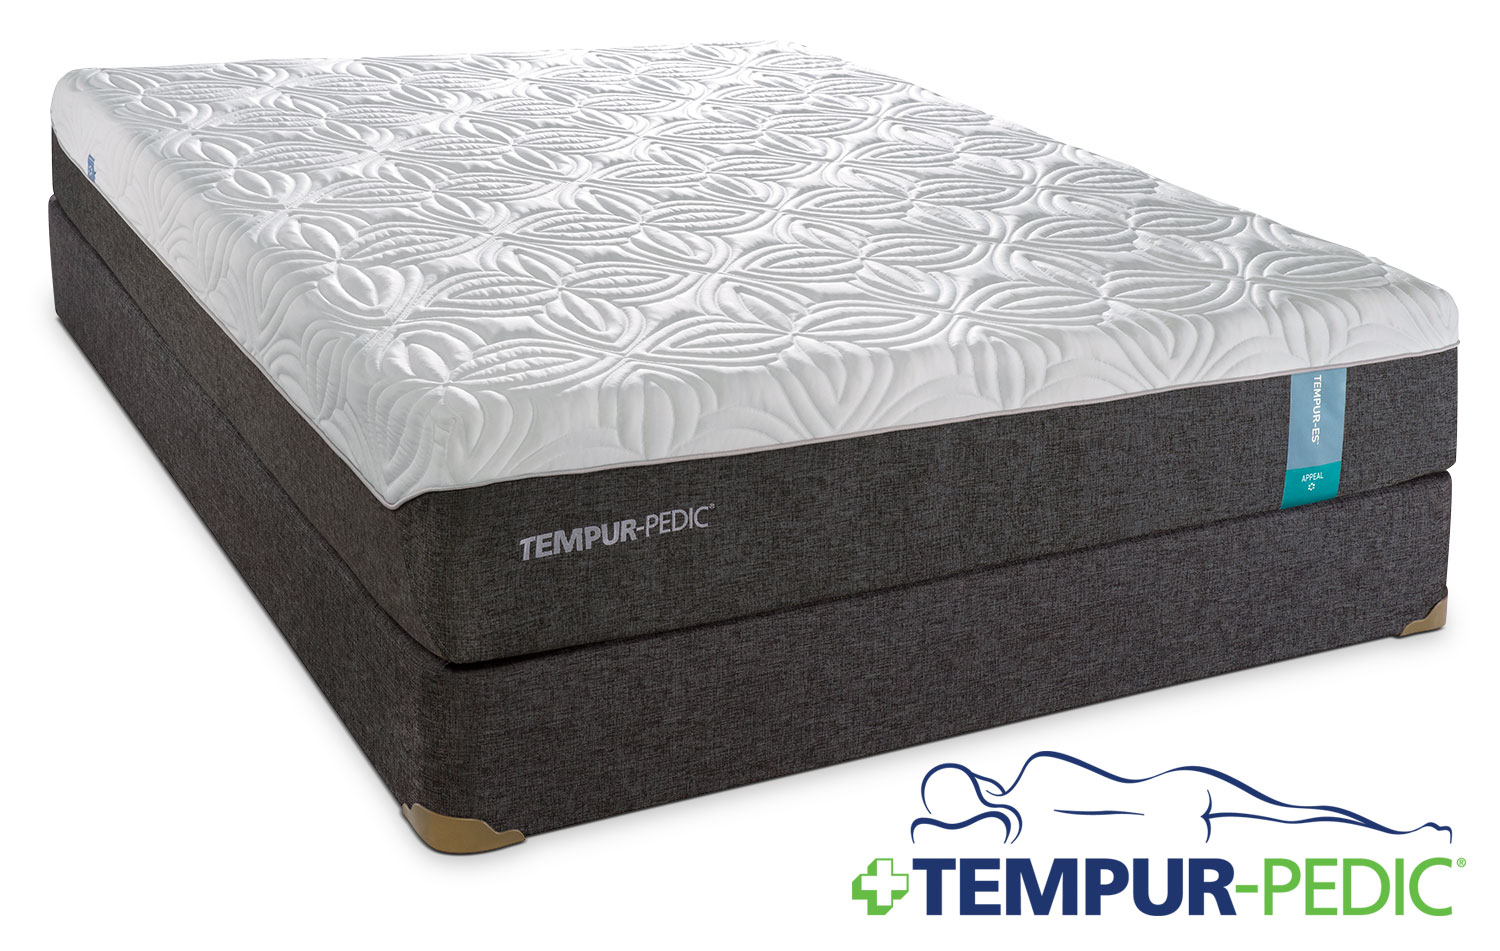 Mattresses and Bedding - Tempur-Pedic Appeal Queen Mattress/Boxspring Set